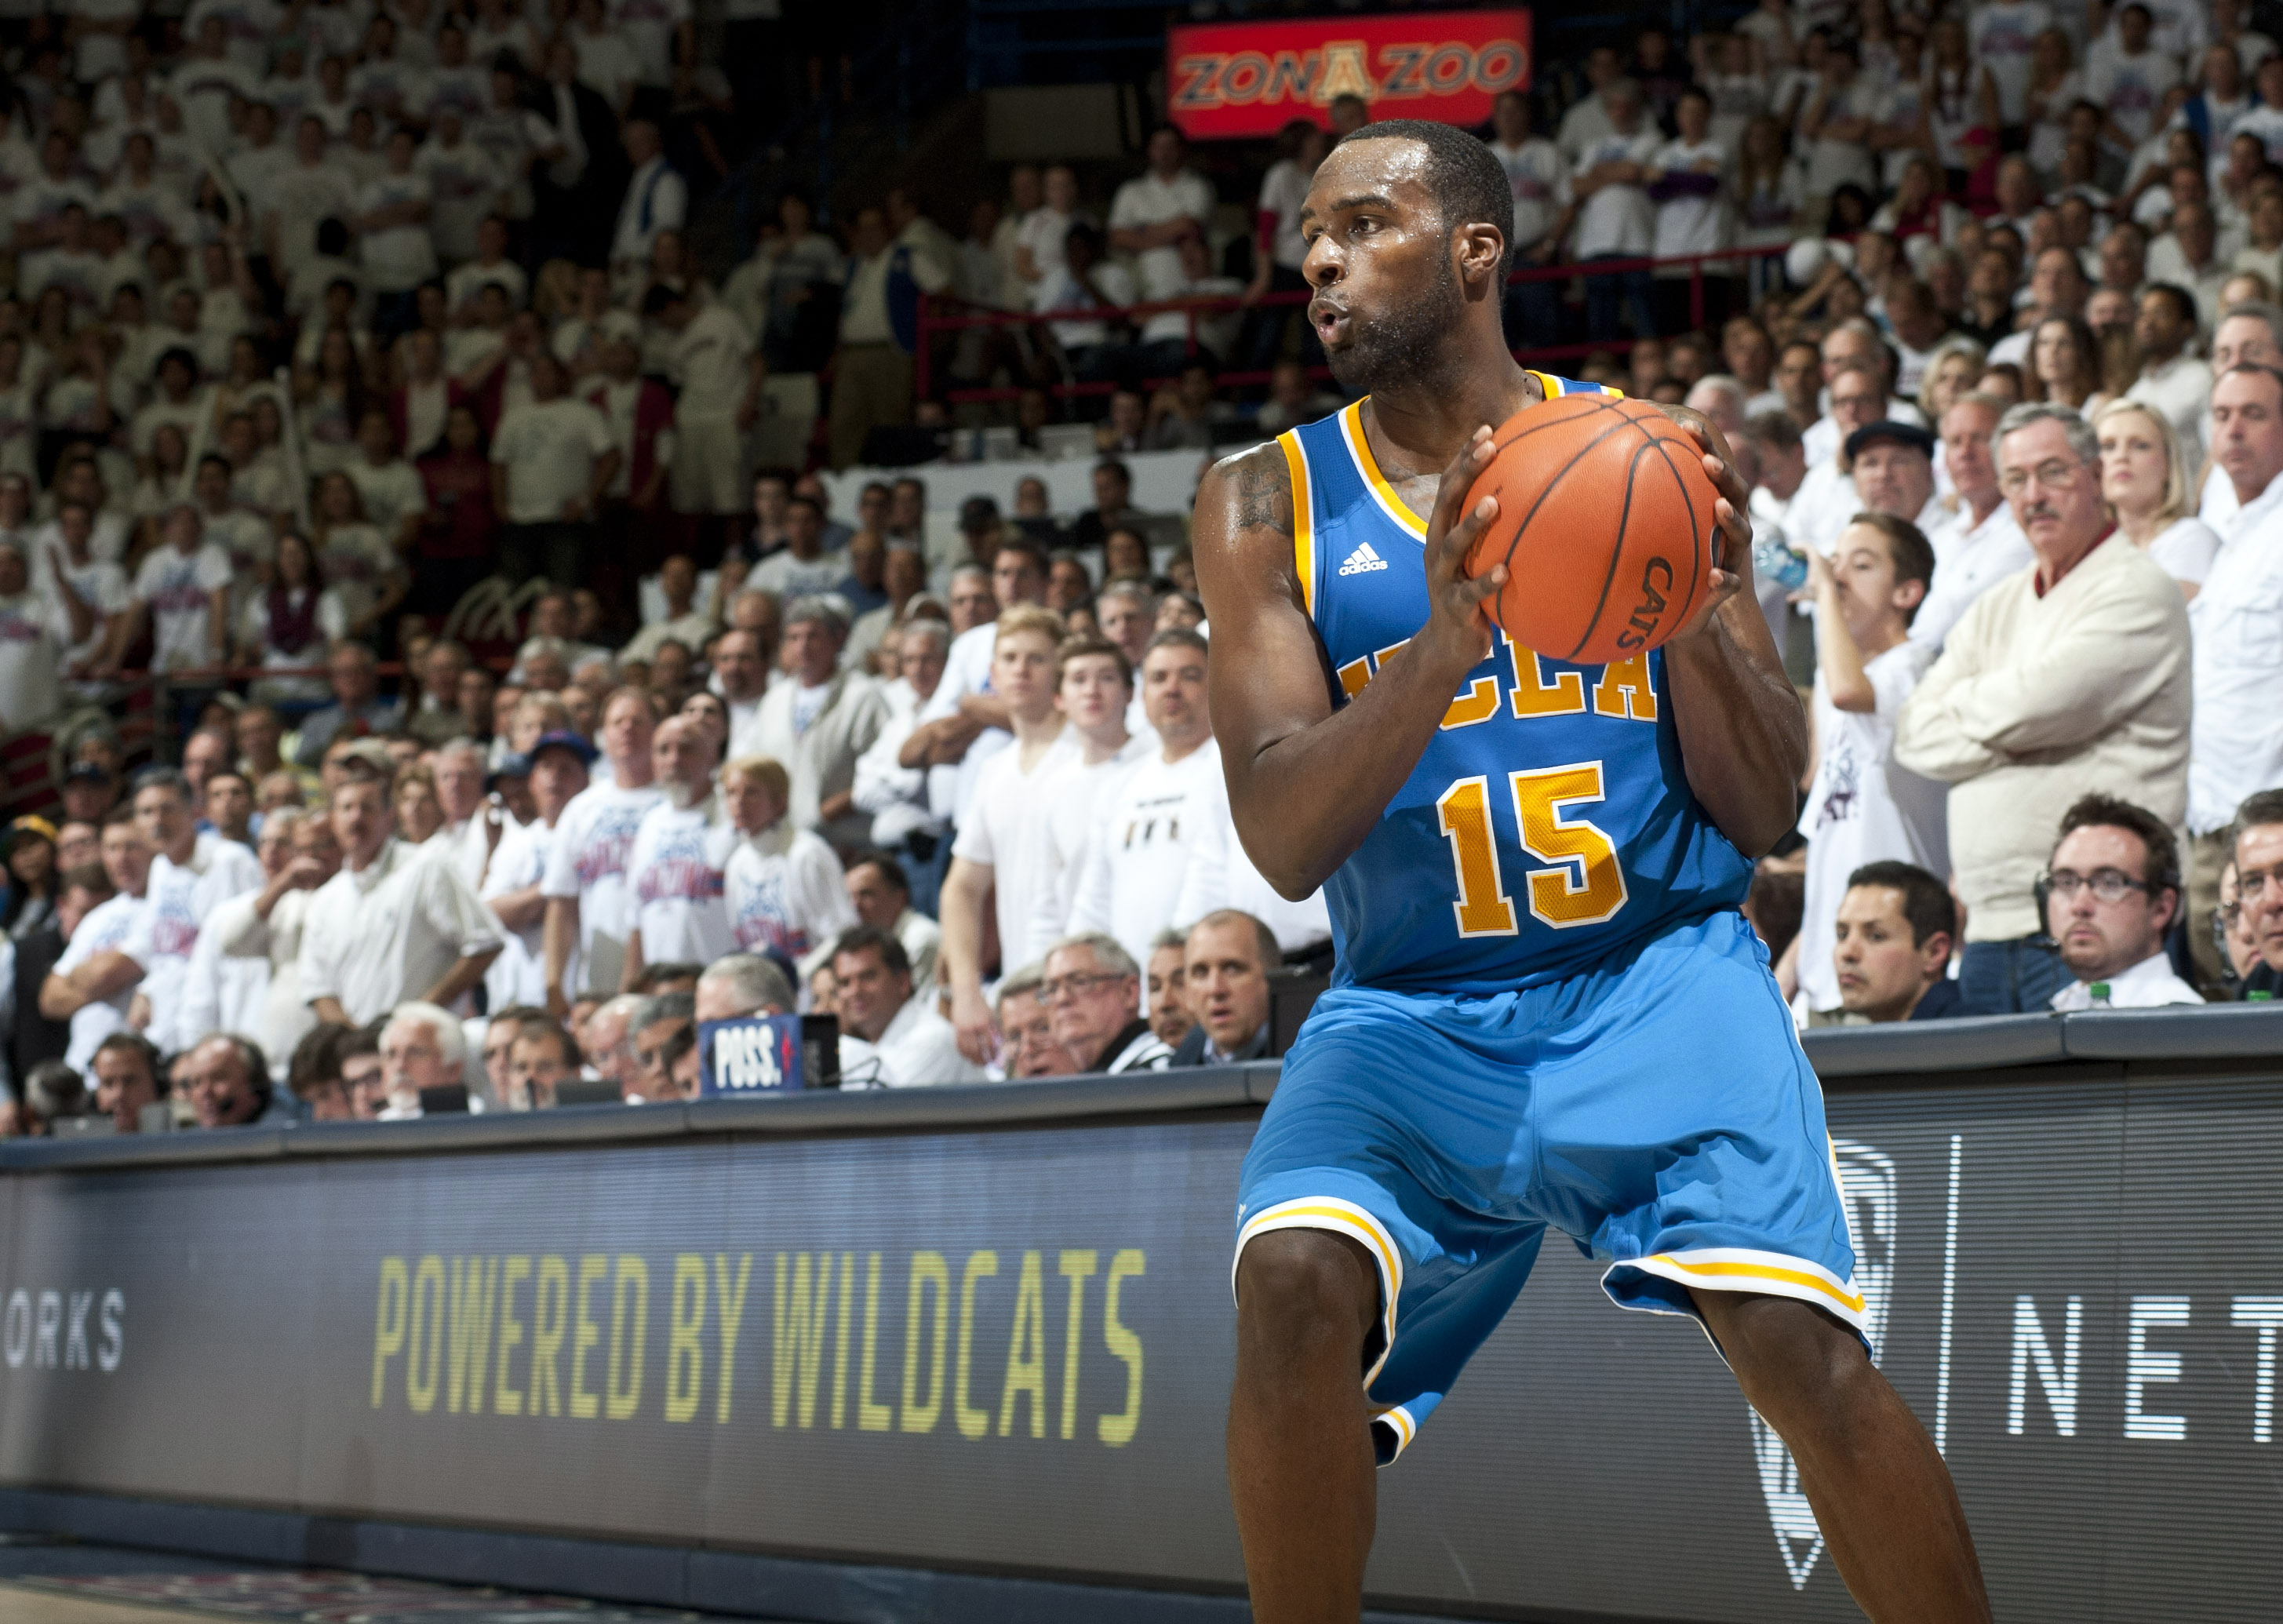 Shabazz Muhammad scored 23 points to lead UCLA past Arizona. (USA Today Sports)